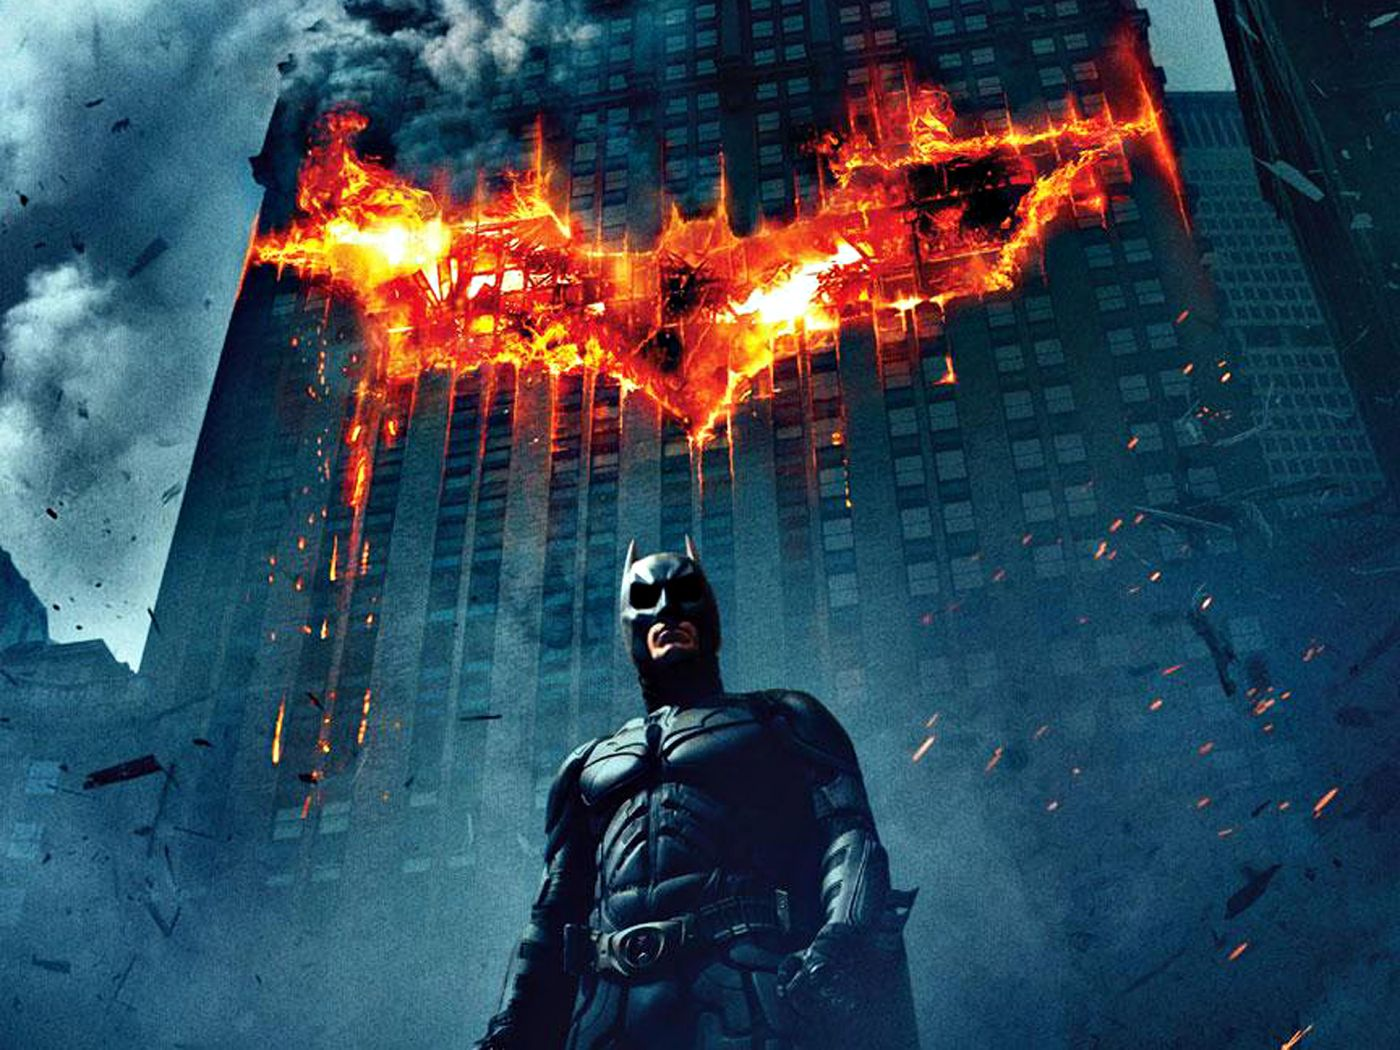 Batman Burning Logo On Building Wallpaper 1400x1050